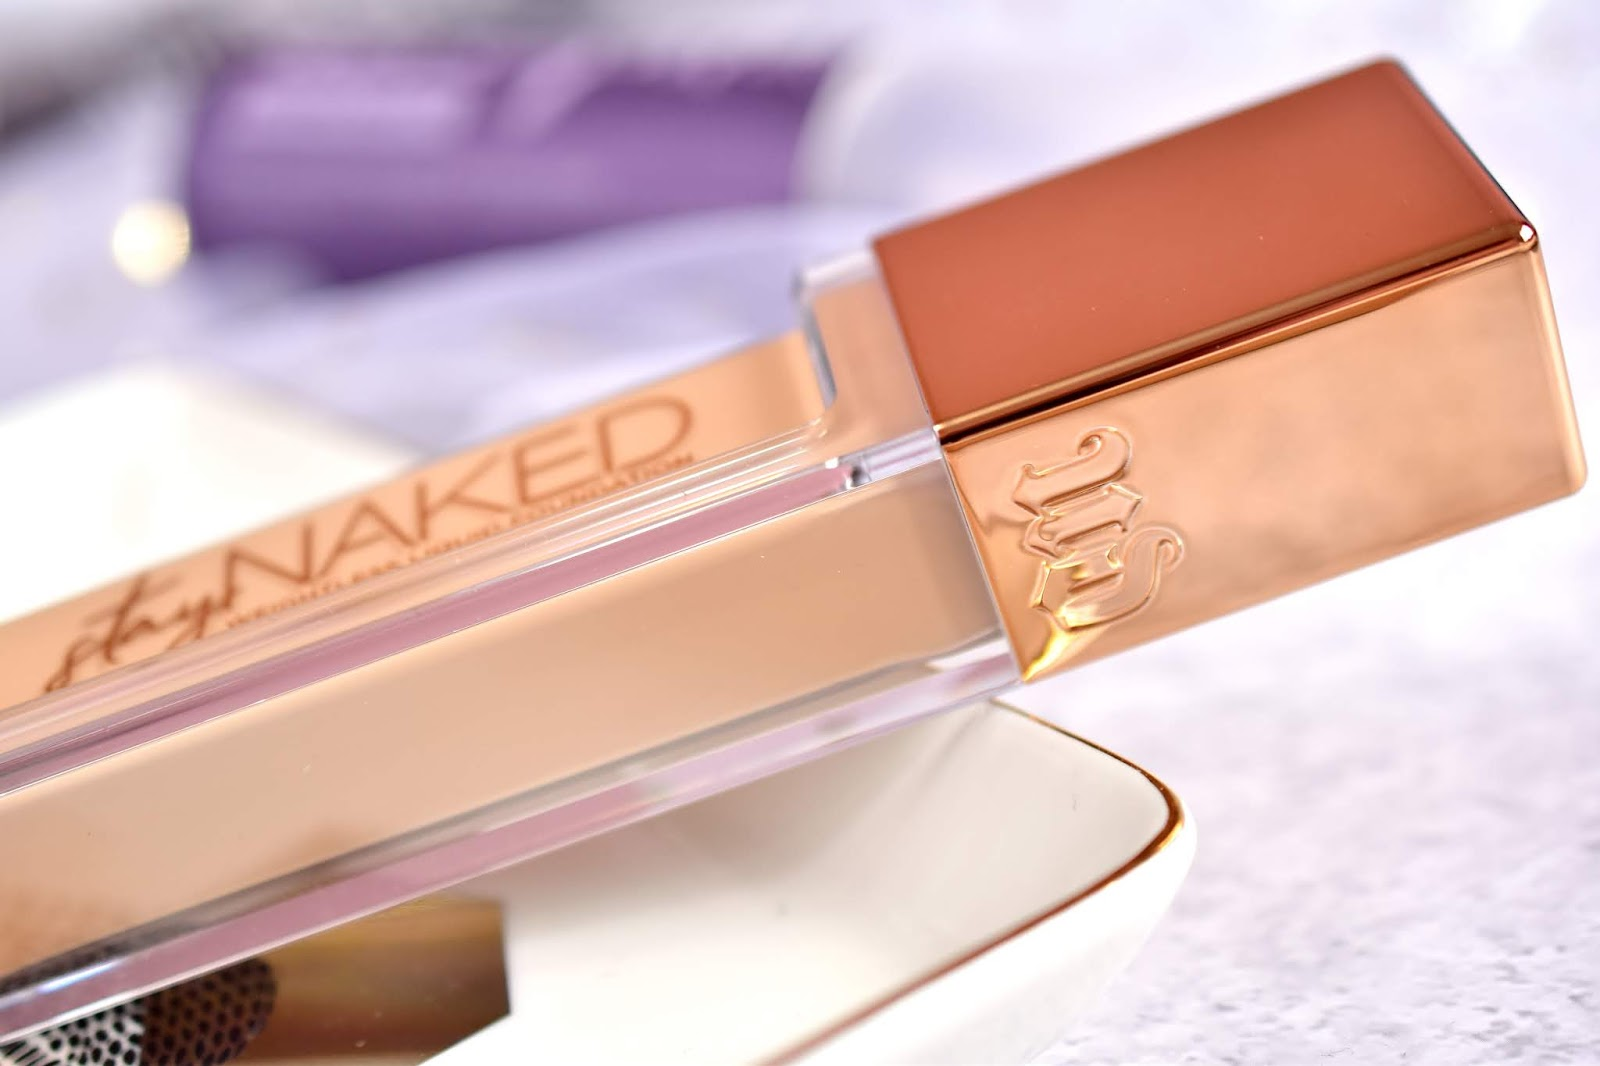 Urban Decay Stay Naked makeup